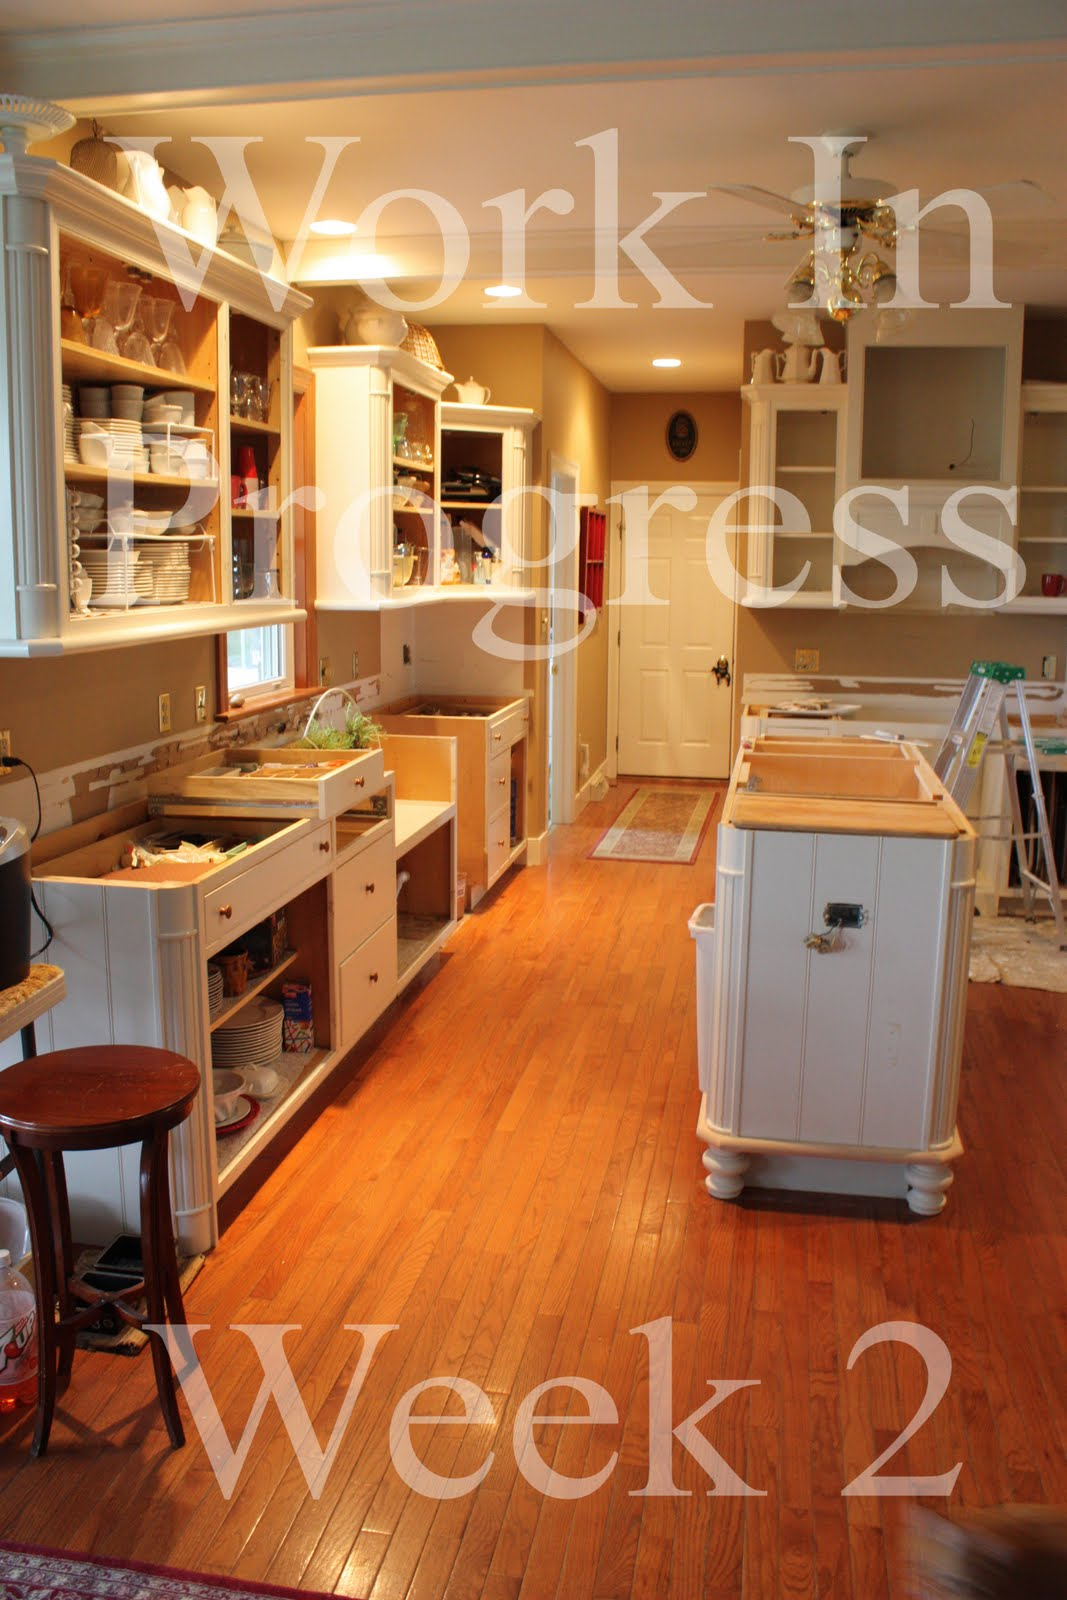 Kitchen Facelift Week 2 And What's On The Menu~ Week Of